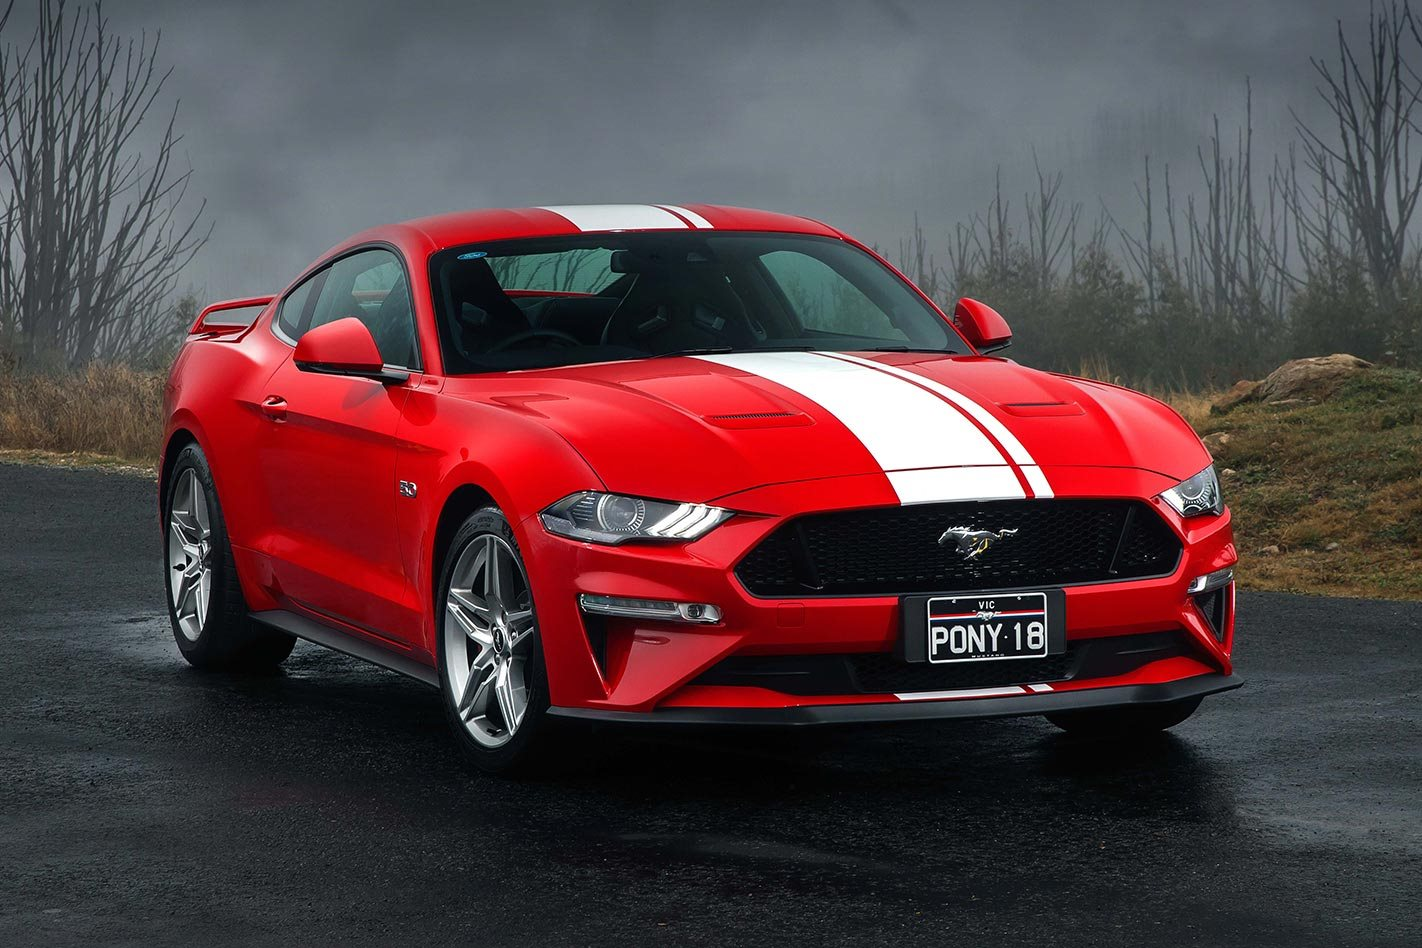 Rumours of four door ford mustang could point to upcoming crossover